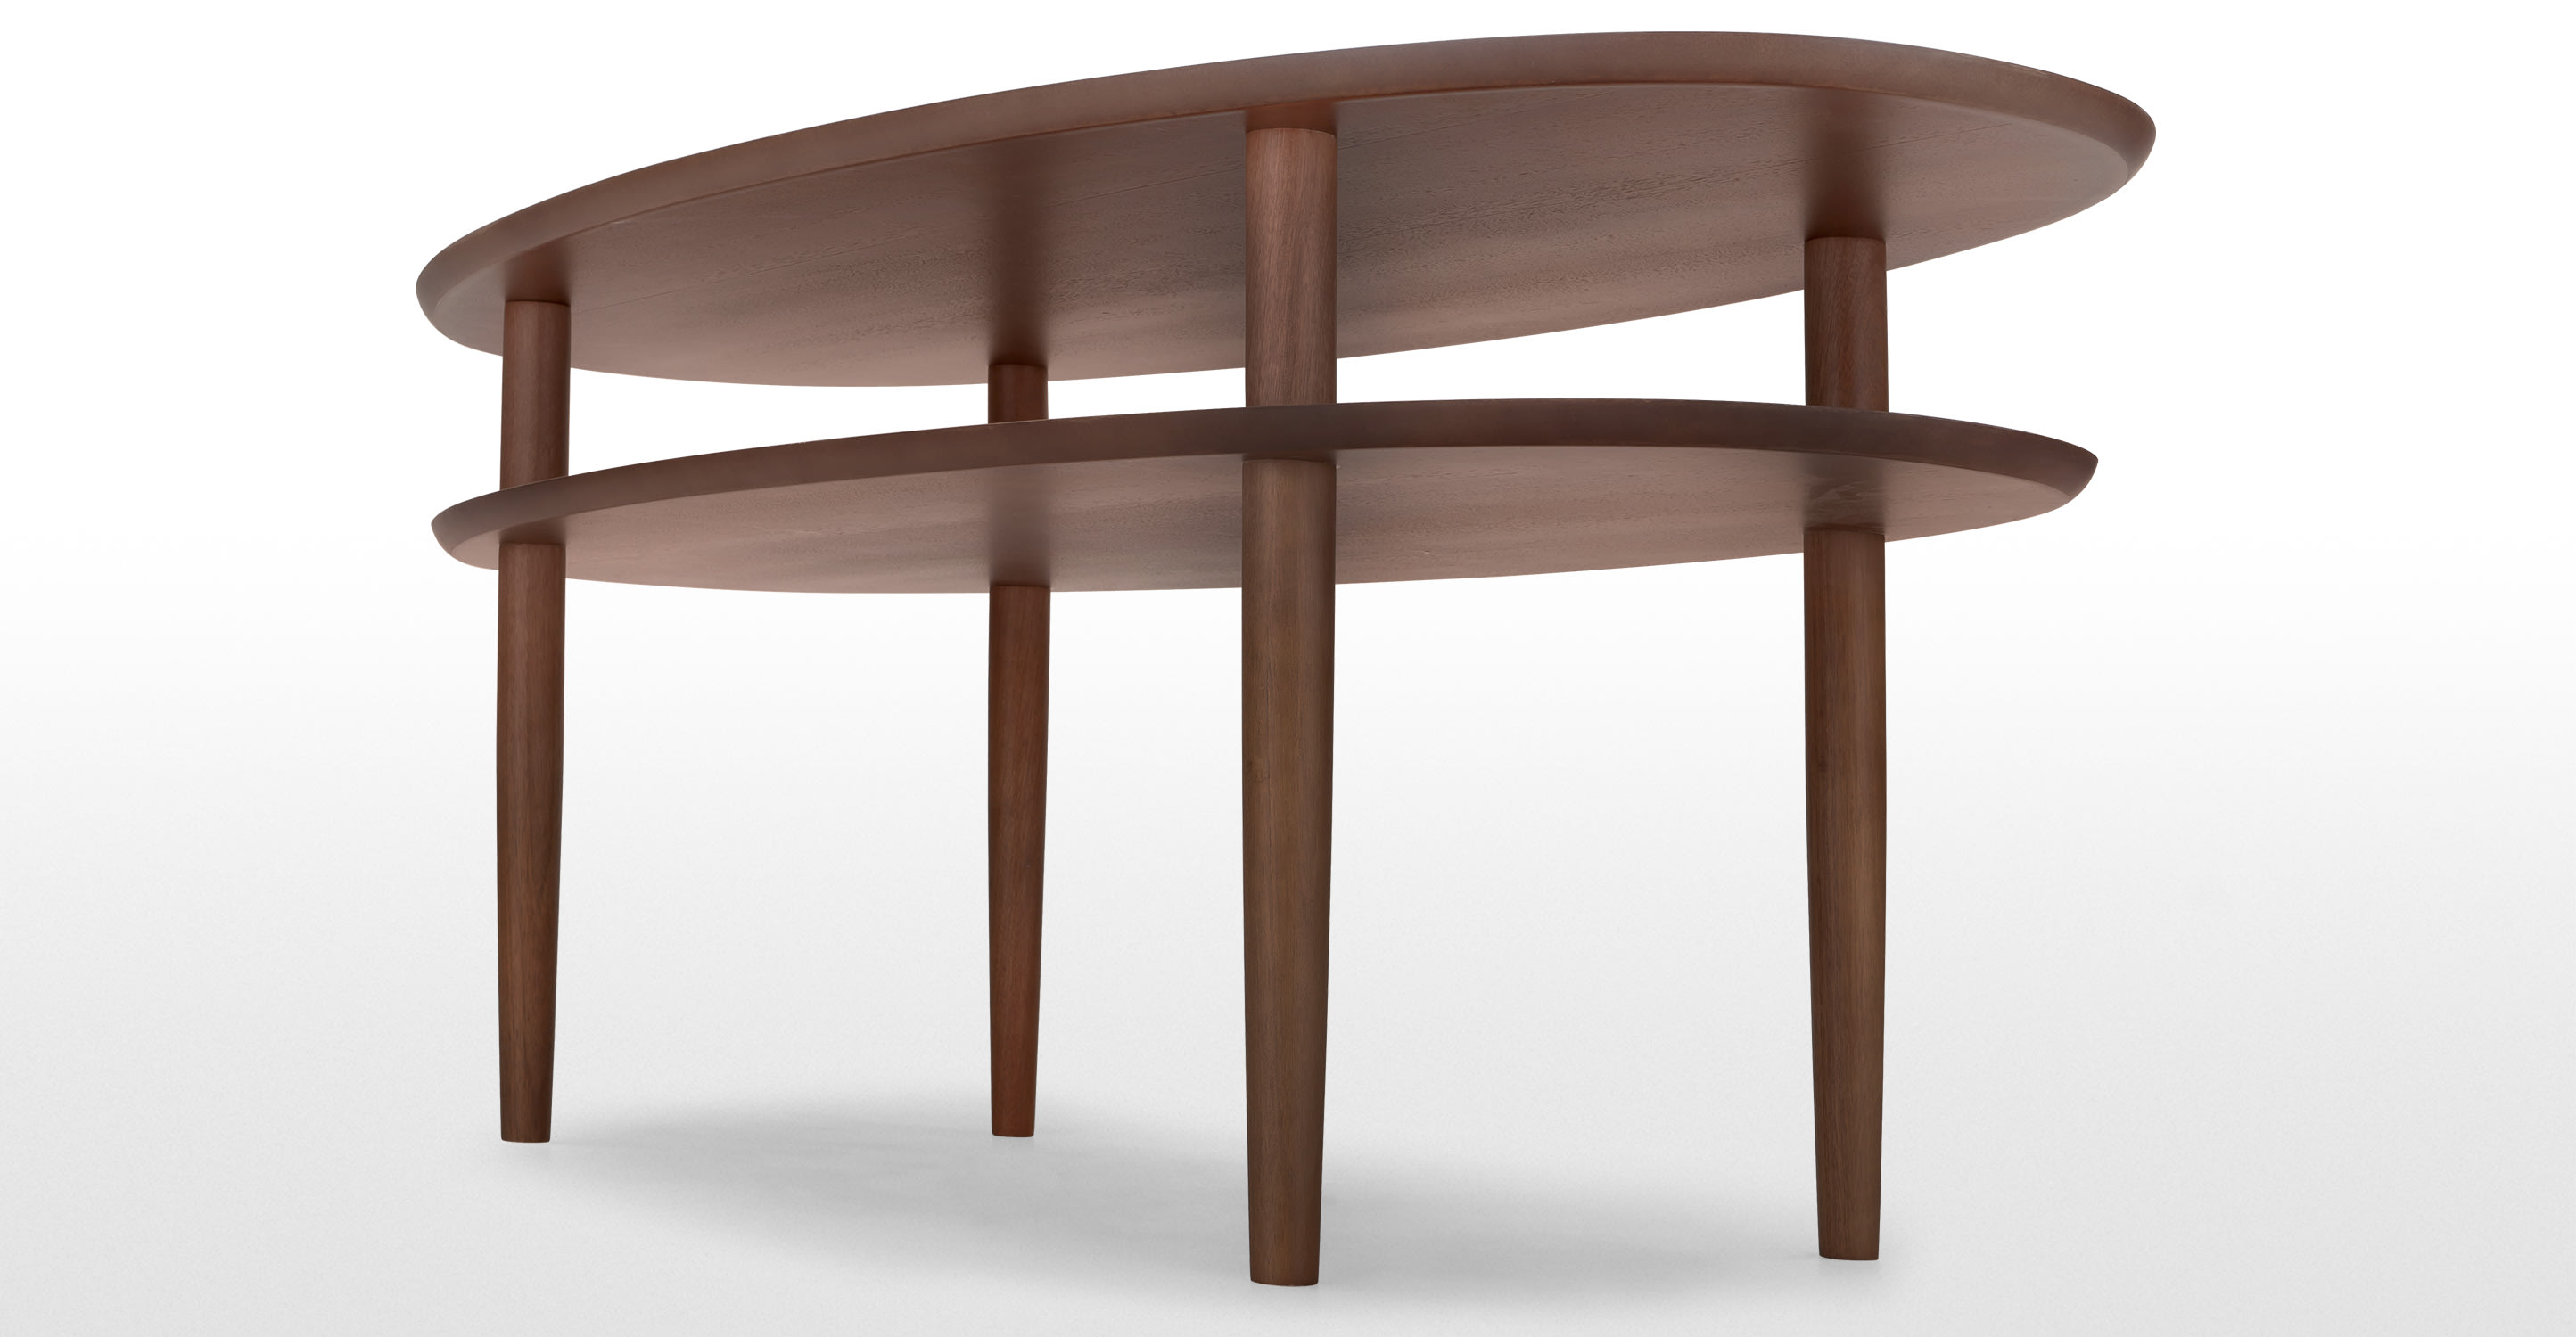 Aden Oval Coffee Table With Storage In Walnut